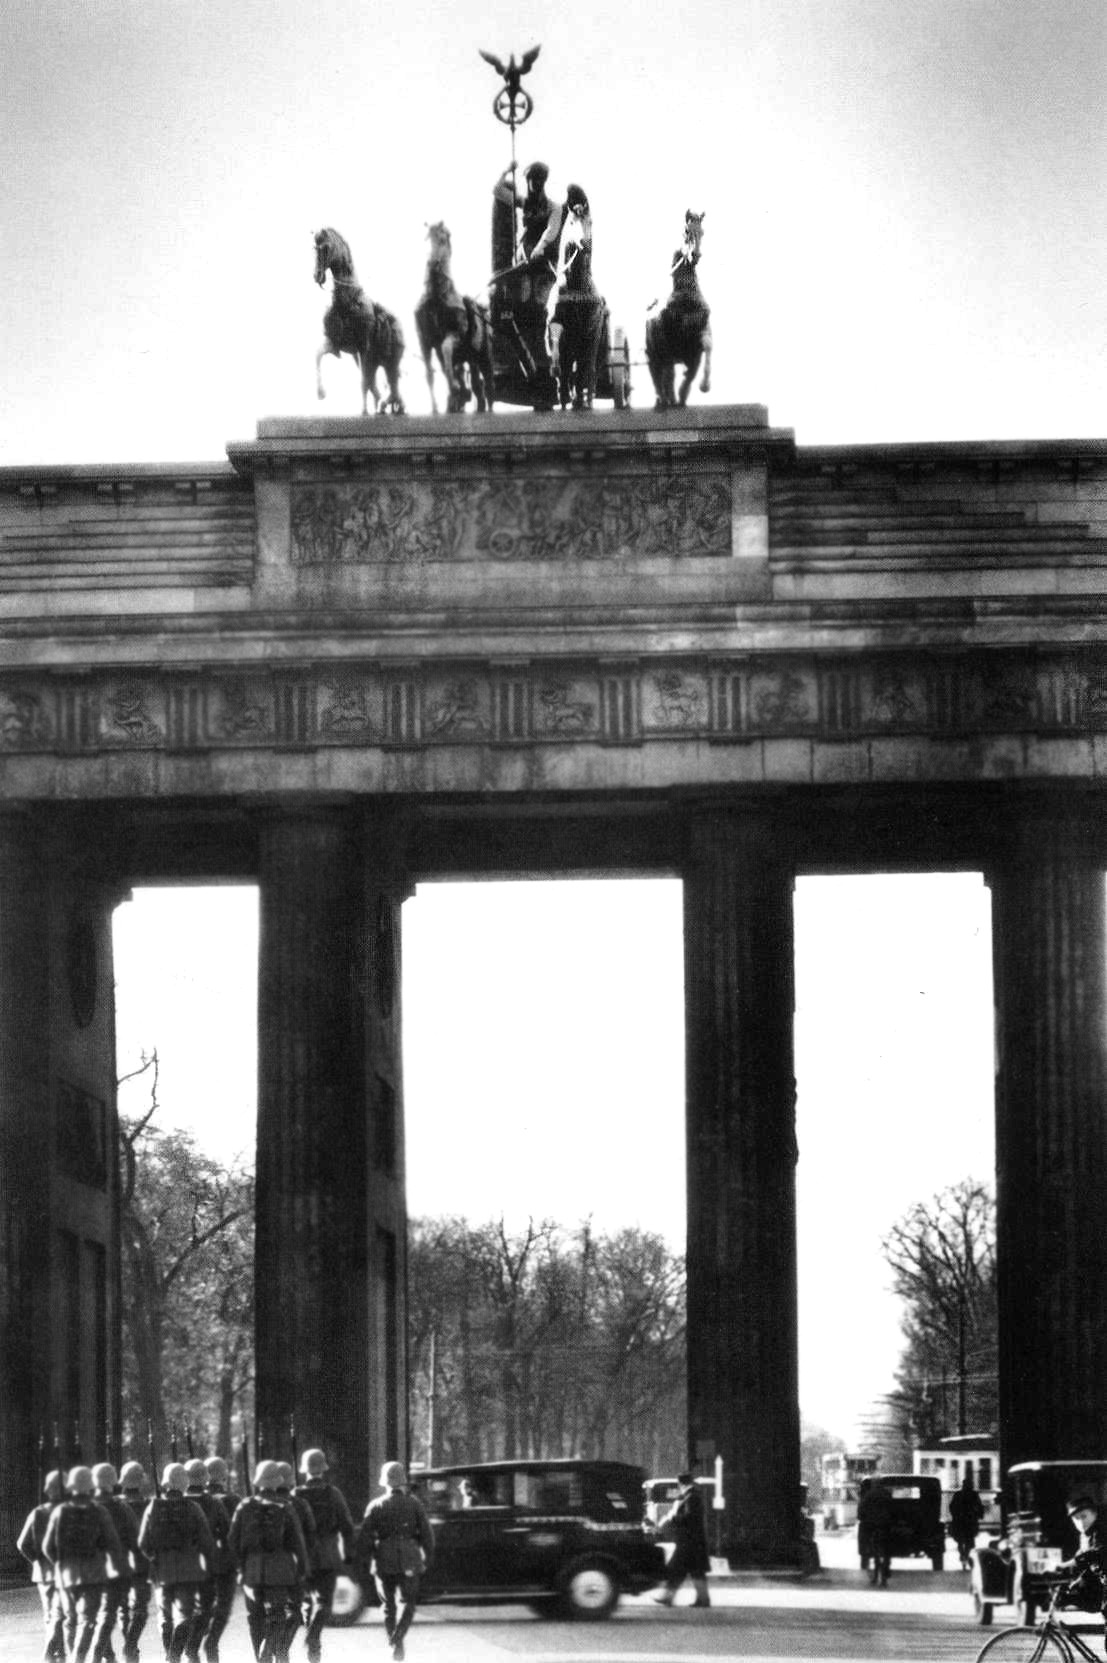 Margaret Bourke-White: Soldiers at the Branderburg gate, Berlin, 1932